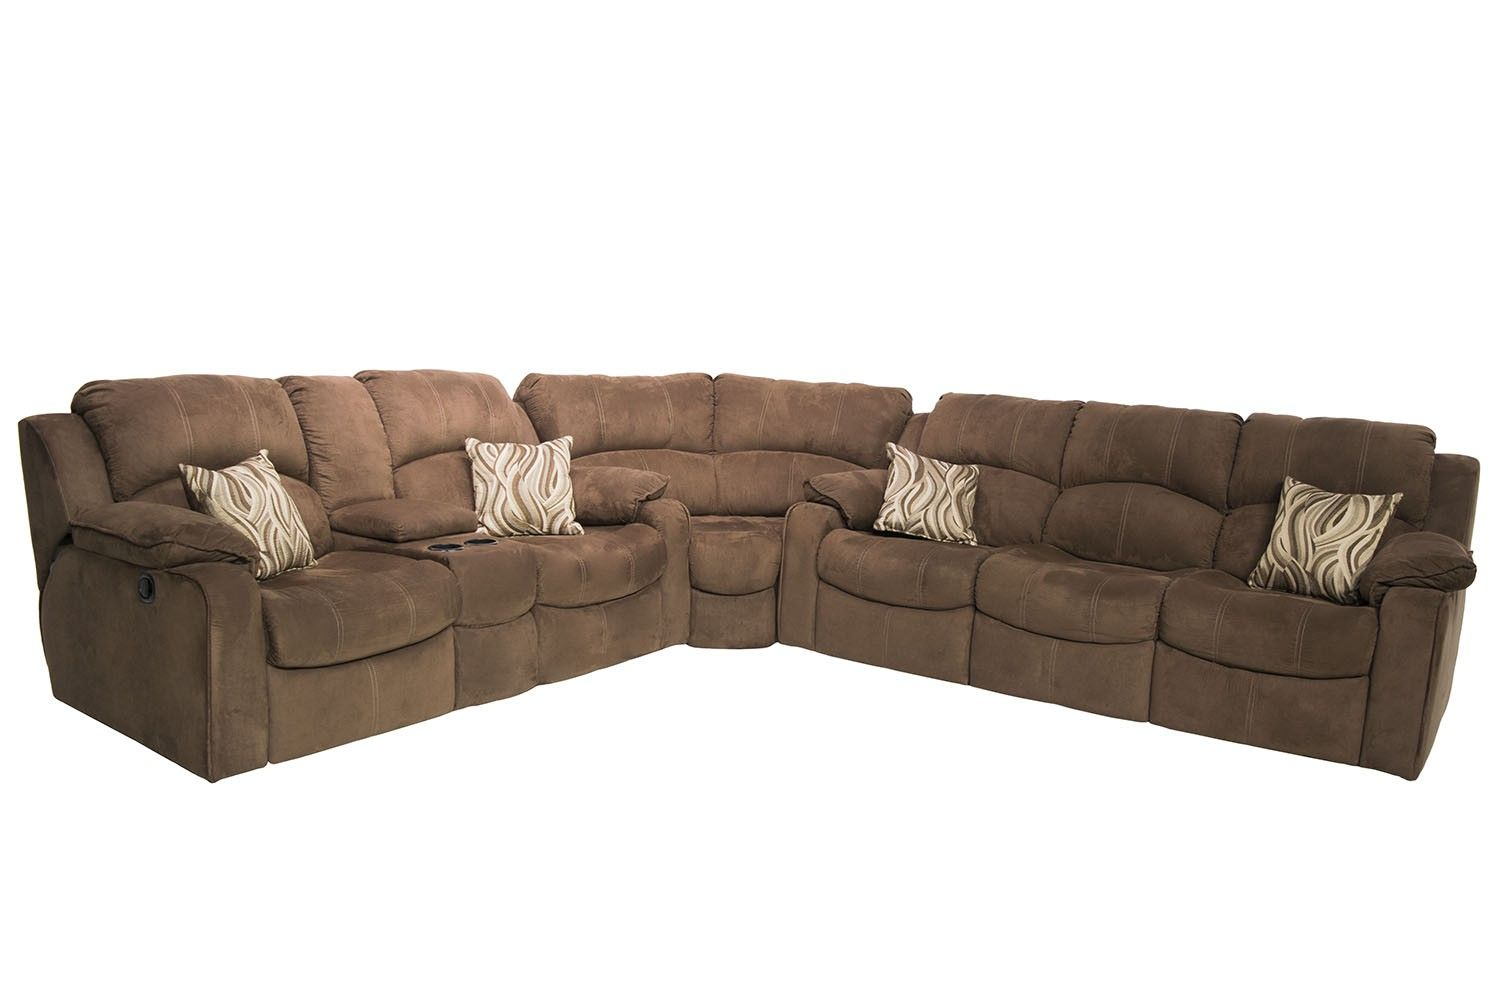 Marvelous Tornado Sectional Living Room In Chocolate Living Room Lamtechconsult Wood Chair Design Ideas Lamtechconsultcom